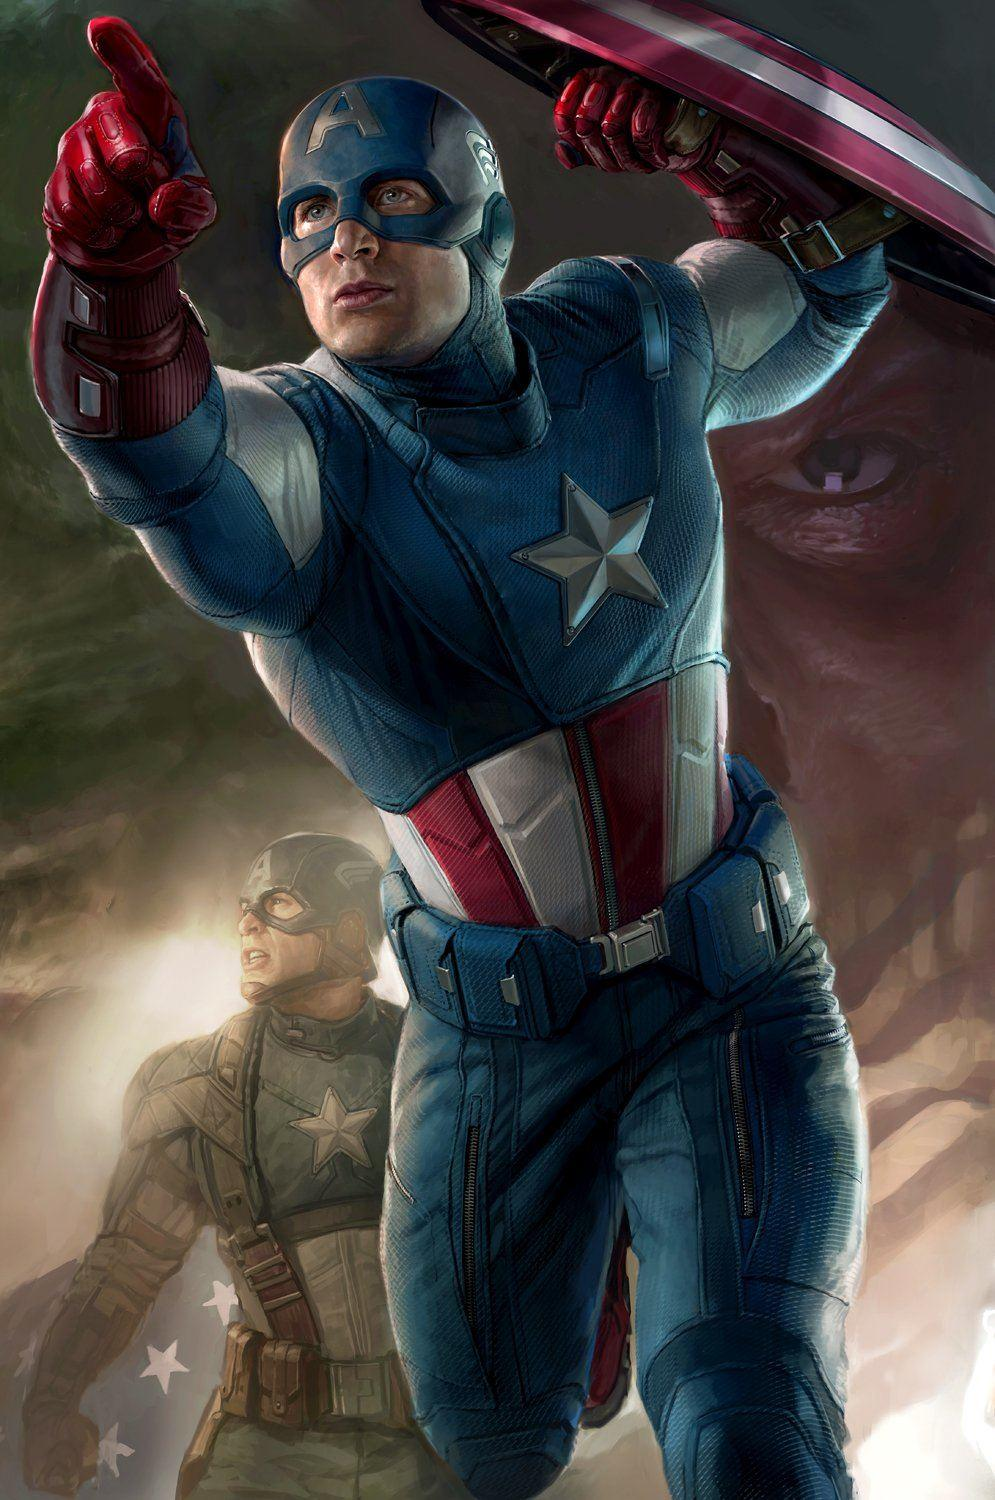 LEGENDS: CAPTAIN AMERICA Giclée On Canvas MARVEL FINE ART